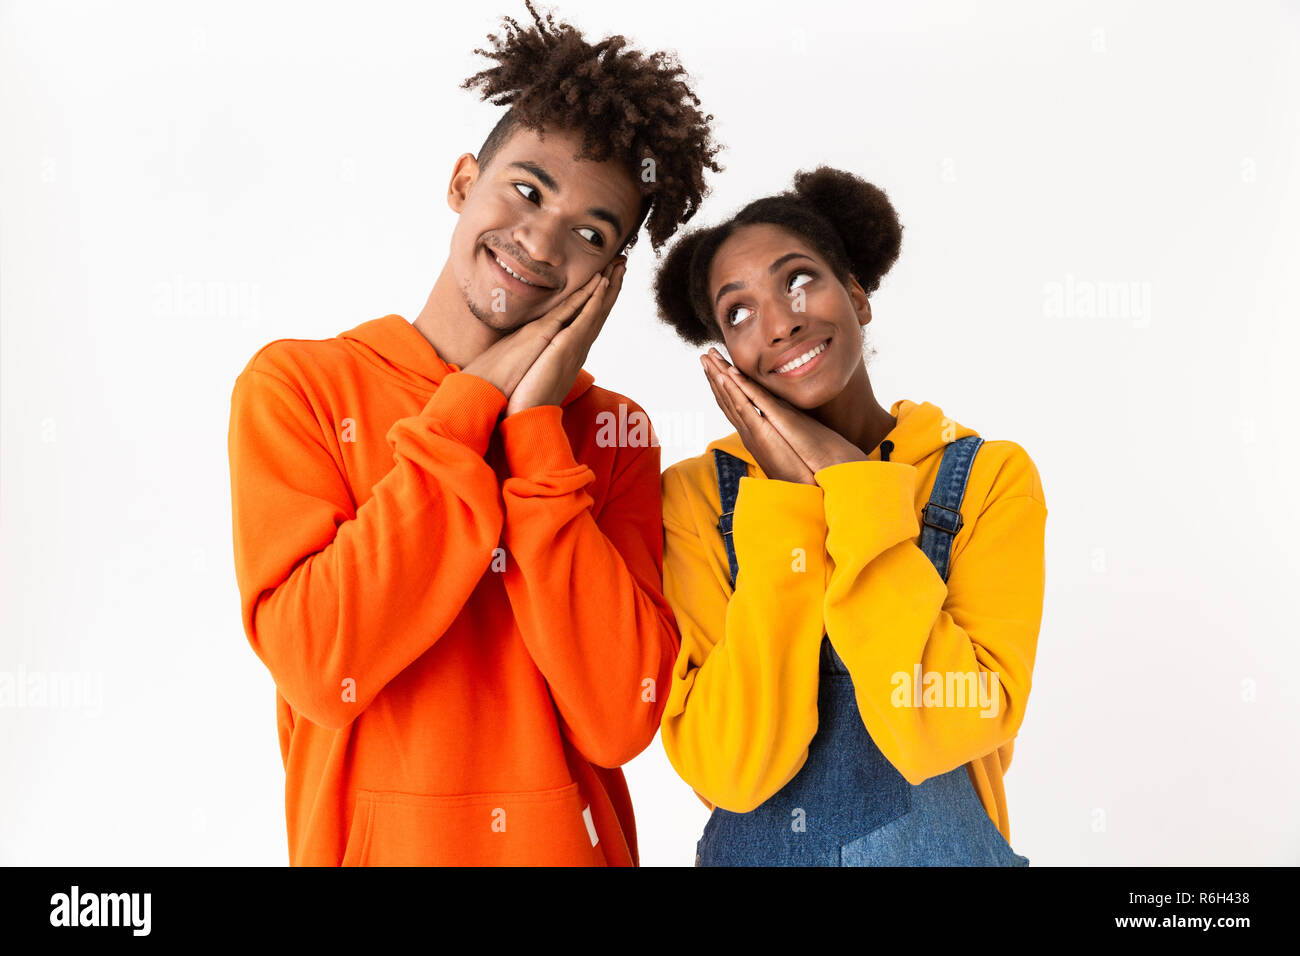 Image of affable african american couple in colorful clothes smiling at camera isolated over white background - Stock Image